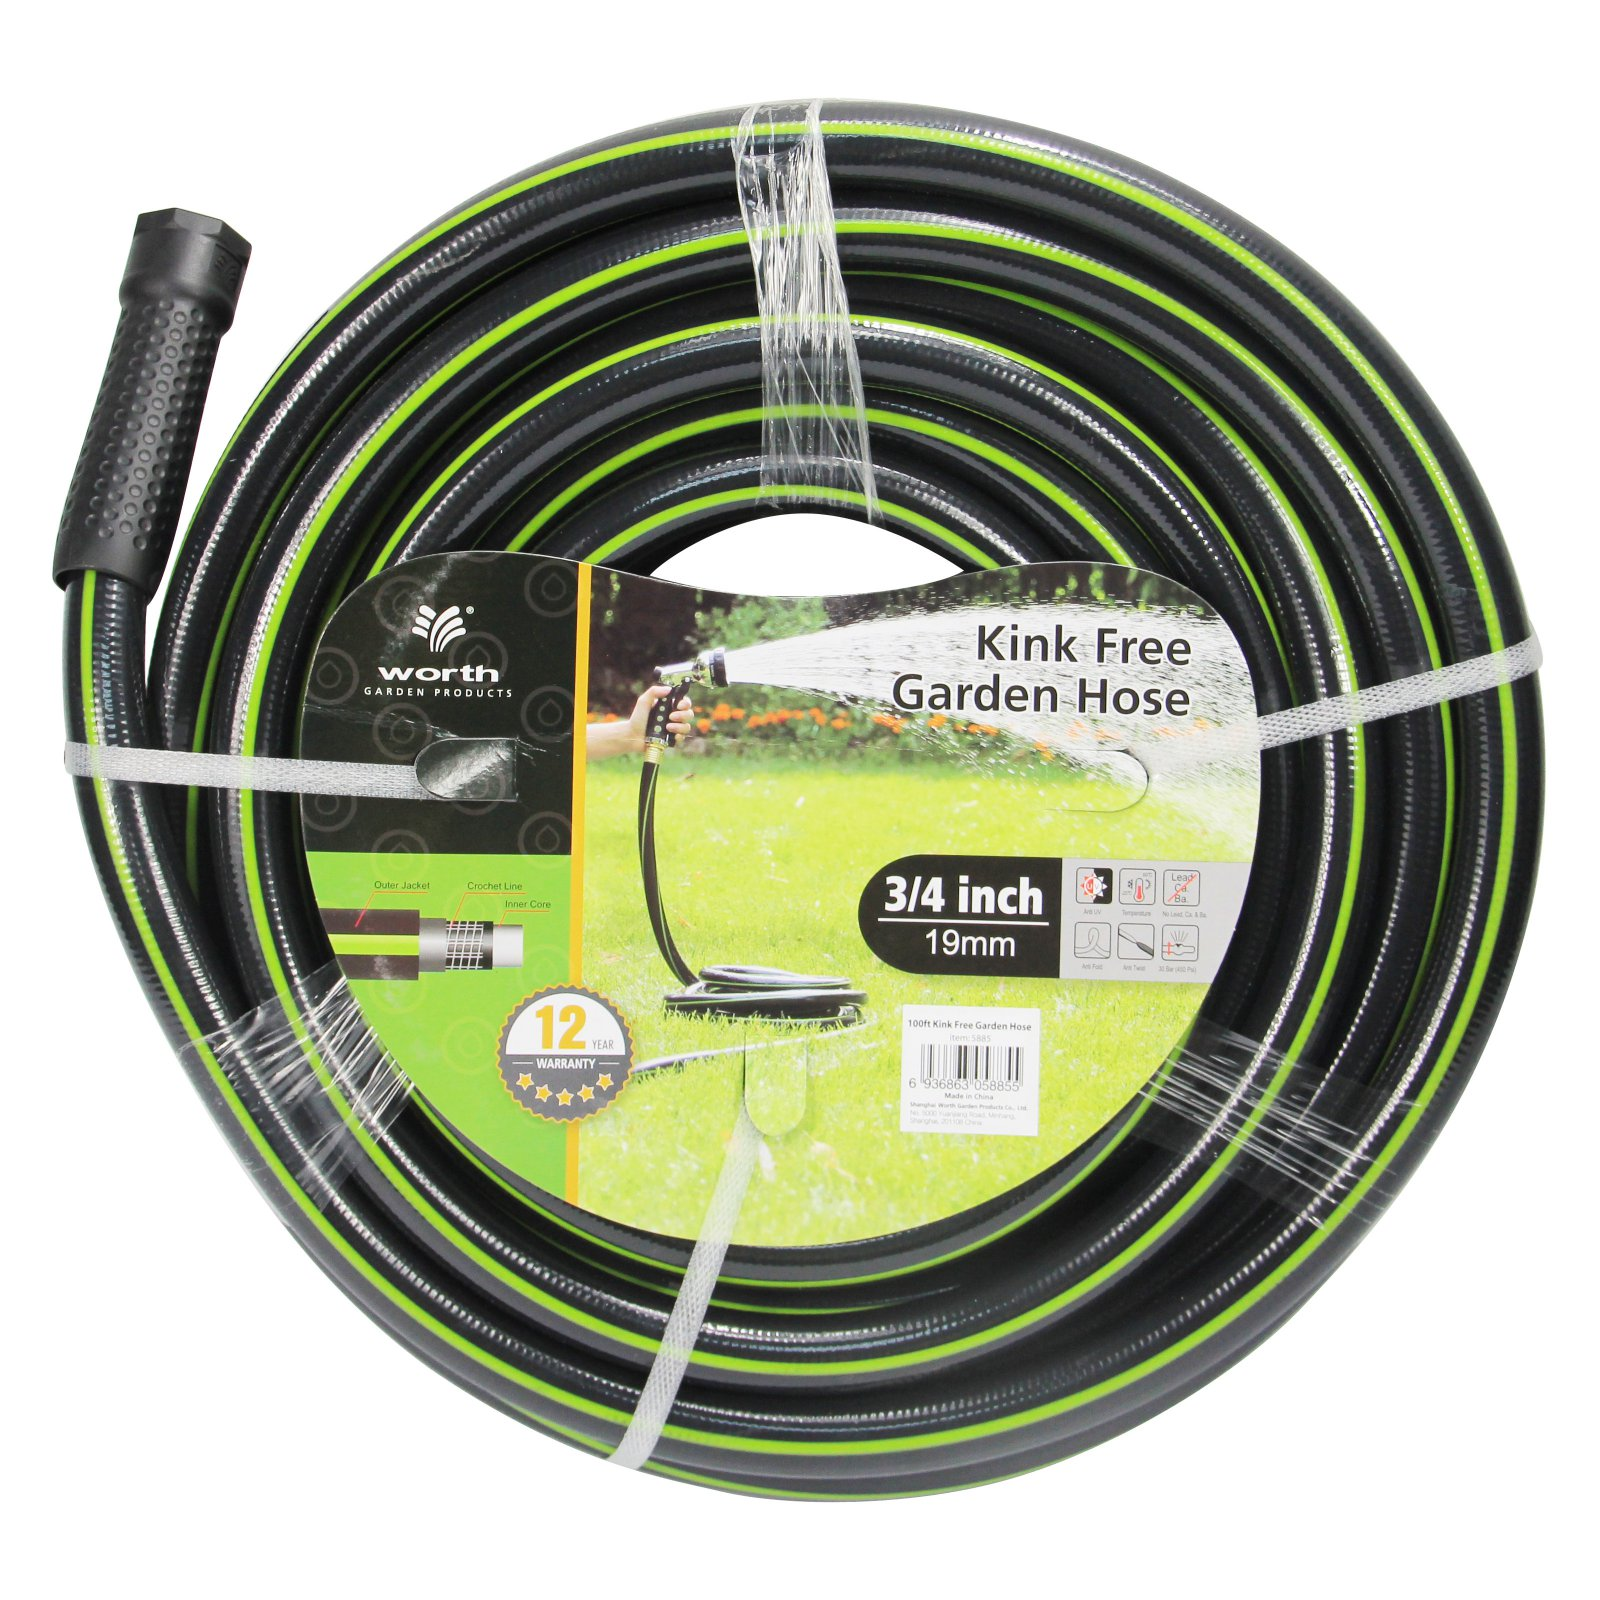 Worth Garden 3 4 in. Heavy Duty Garden Hose by